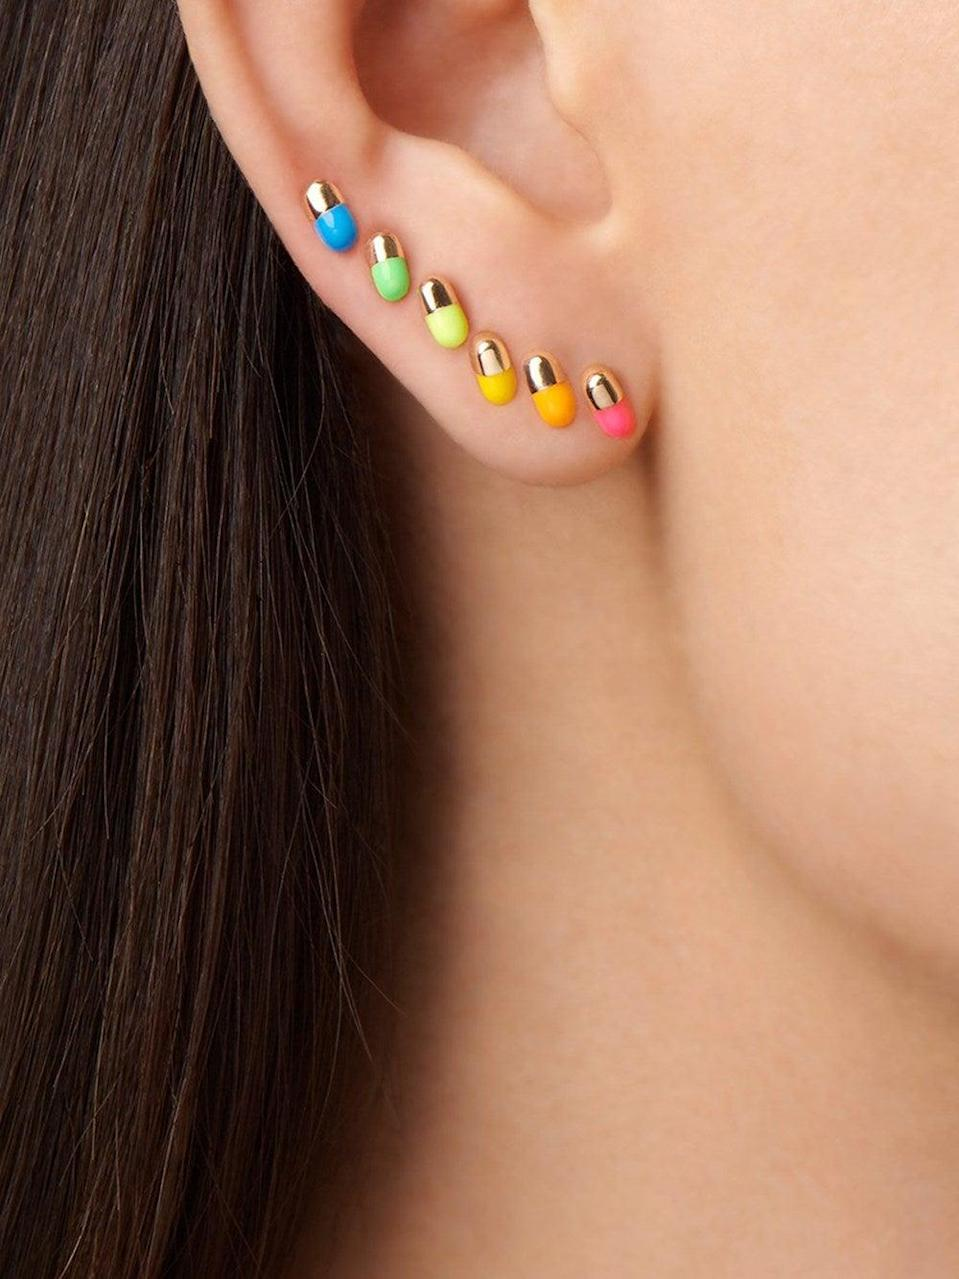 """<h3>Alison Lou Tiny Pill Single Earring<br></h3> <br>Alison Lou is known to work magic with enamel to create cheeky emoji jewelry, so this assortment of gilded multi-colored pill earrings are a natural next step.<br><br><em>Shop <strong><a href=""""https://www.ylang23.com/"""" rel=""""nofollow noopener"""" target=""""_blank"""" data-ylk=""""slk:Ylang23"""" class=""""link rapid-noclick-resp"""">Ylang23</a></strong></em><br><br><strong>Alison Lou</strong> Glitter Tiny Pill Stud Single Earring, $, available at <a href=""""https://go.skimresources.com/?id=30283X879131&url=https%3A%2F%2Fwww.ylang23.com%2Falison-lou-silver-glitter-tiny-pill-stud-single-earring-yellow-gold%2Fp%2FAL-36031228"""" rel=""""nofollow noopener"""" target=""""_blank"""" data-ylk=""""slk:Ylang23"""" class=""""link rapid-noclick-resp"""">Ylang23</a><br><br><br>"""